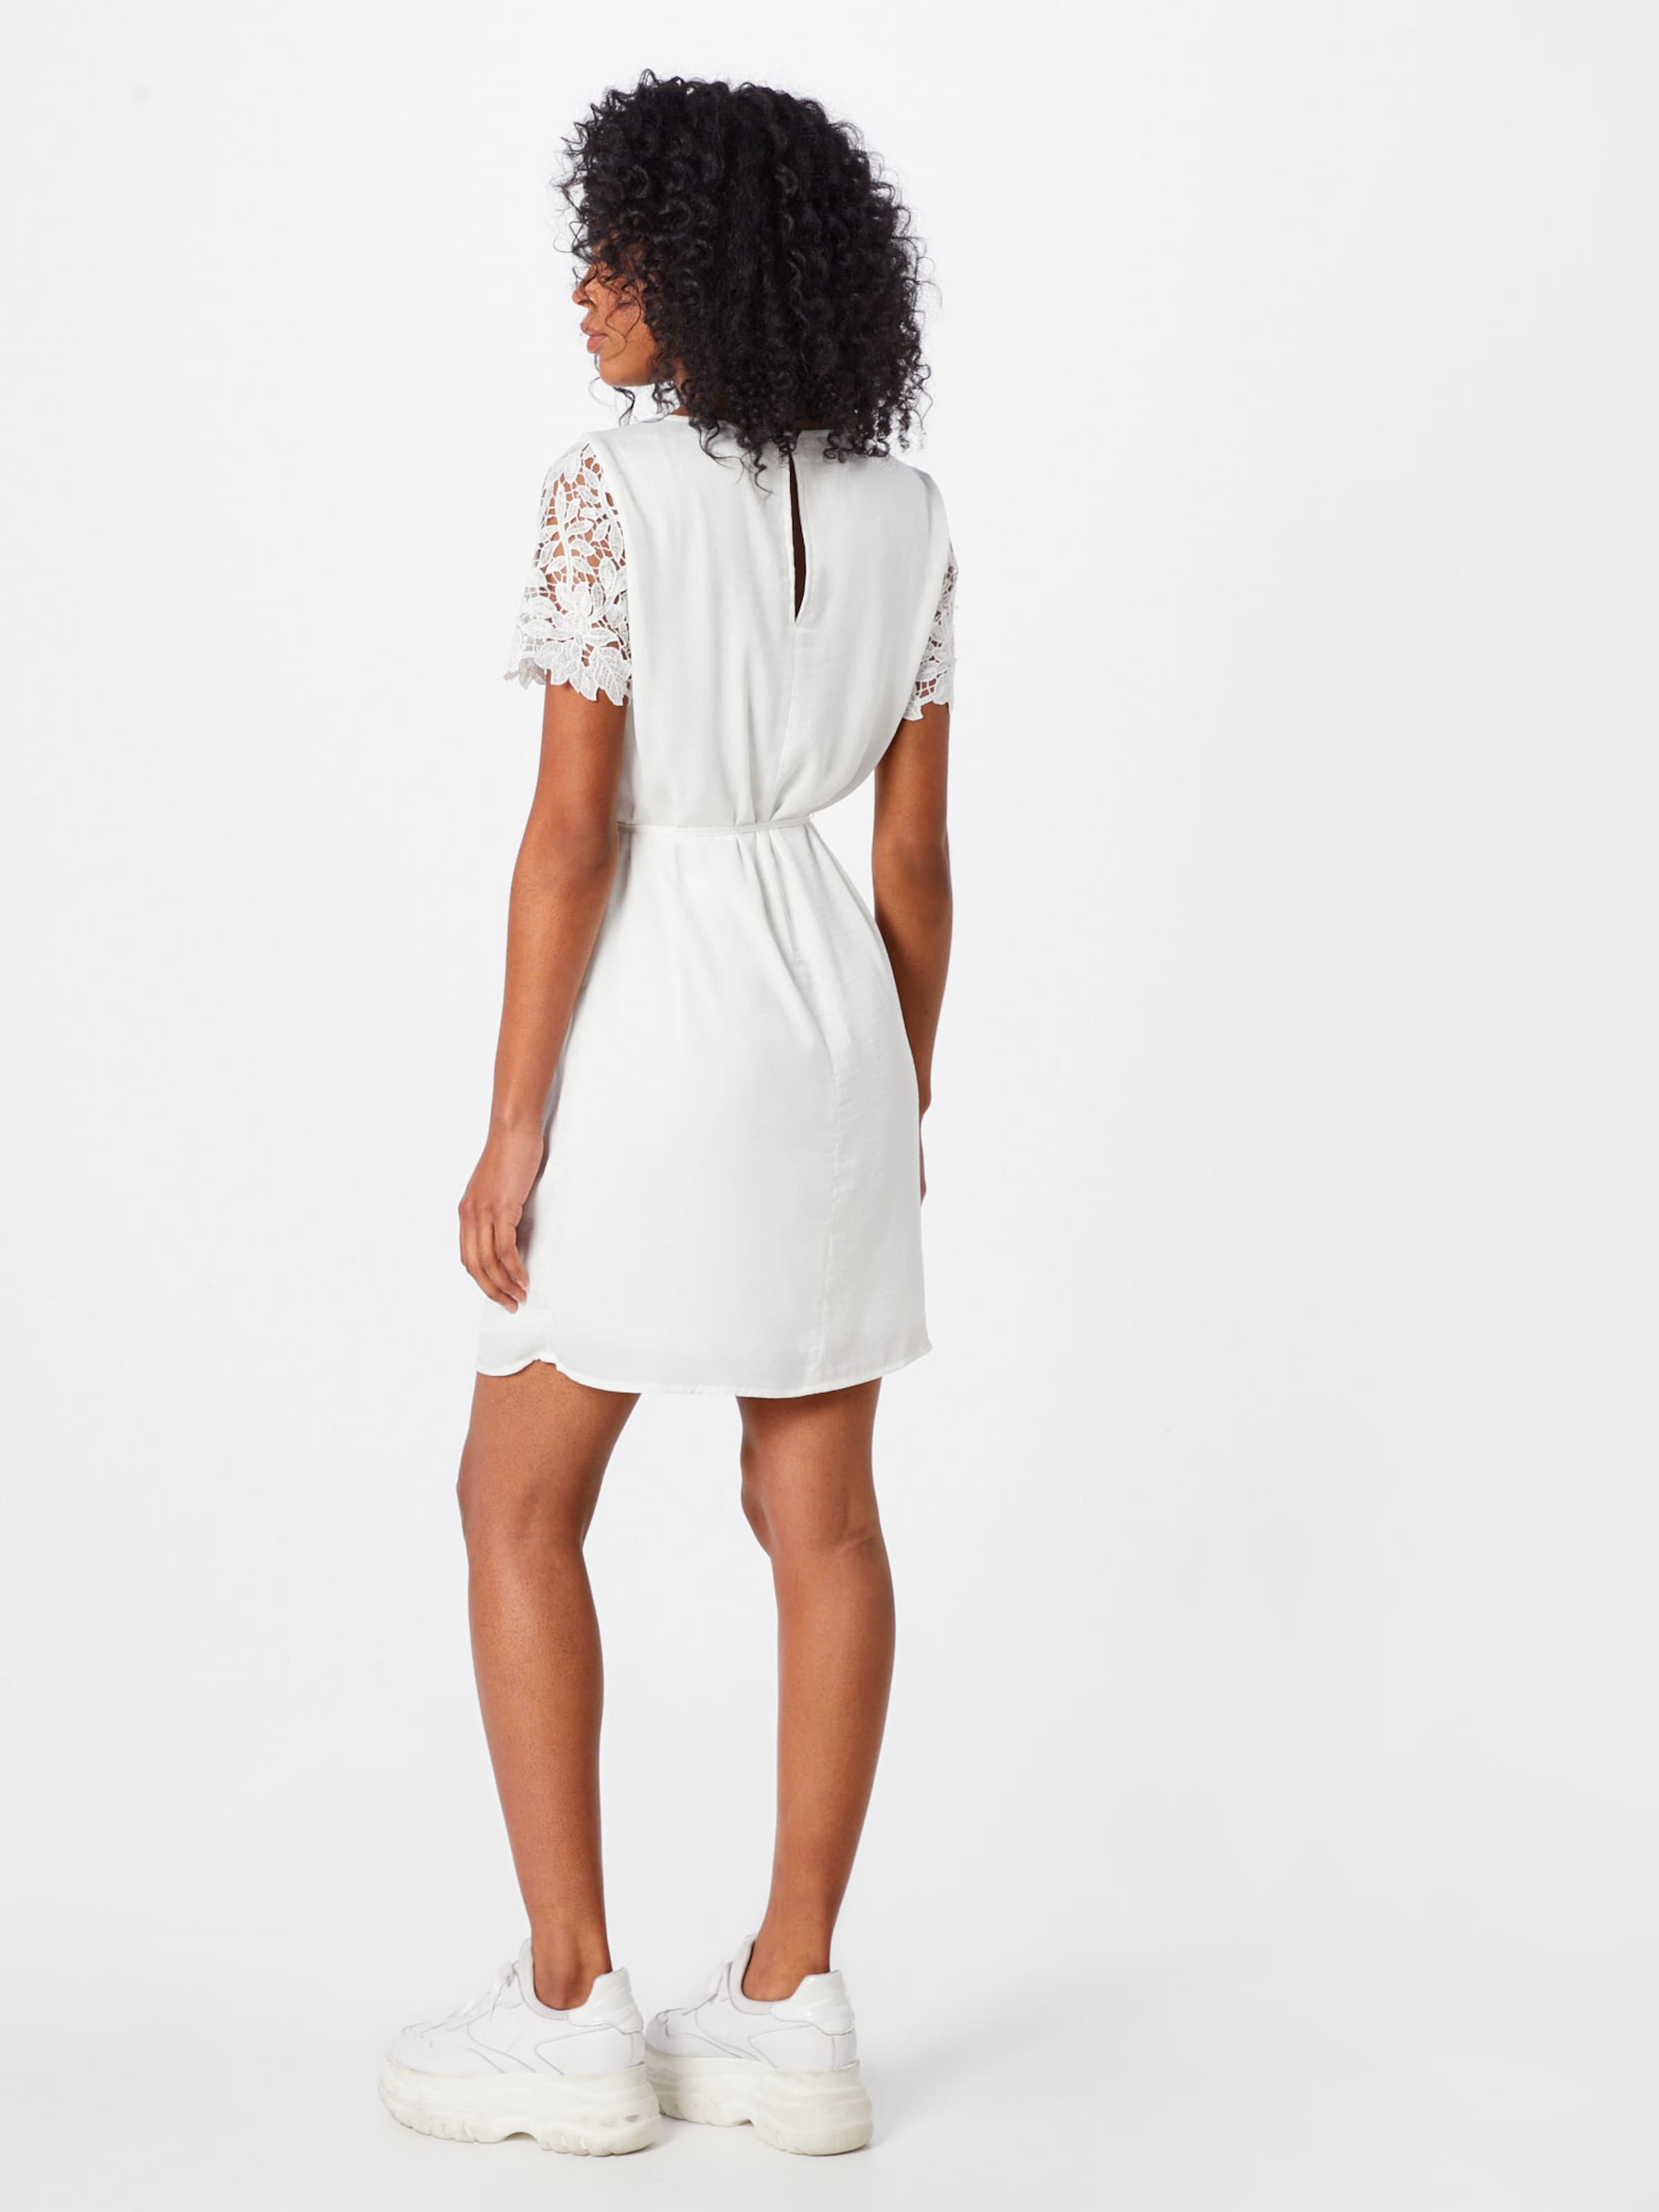 Lace Vila 'vimelli Blanc De Blocked Robe Cocktail Dress' En yvN0wmn8O